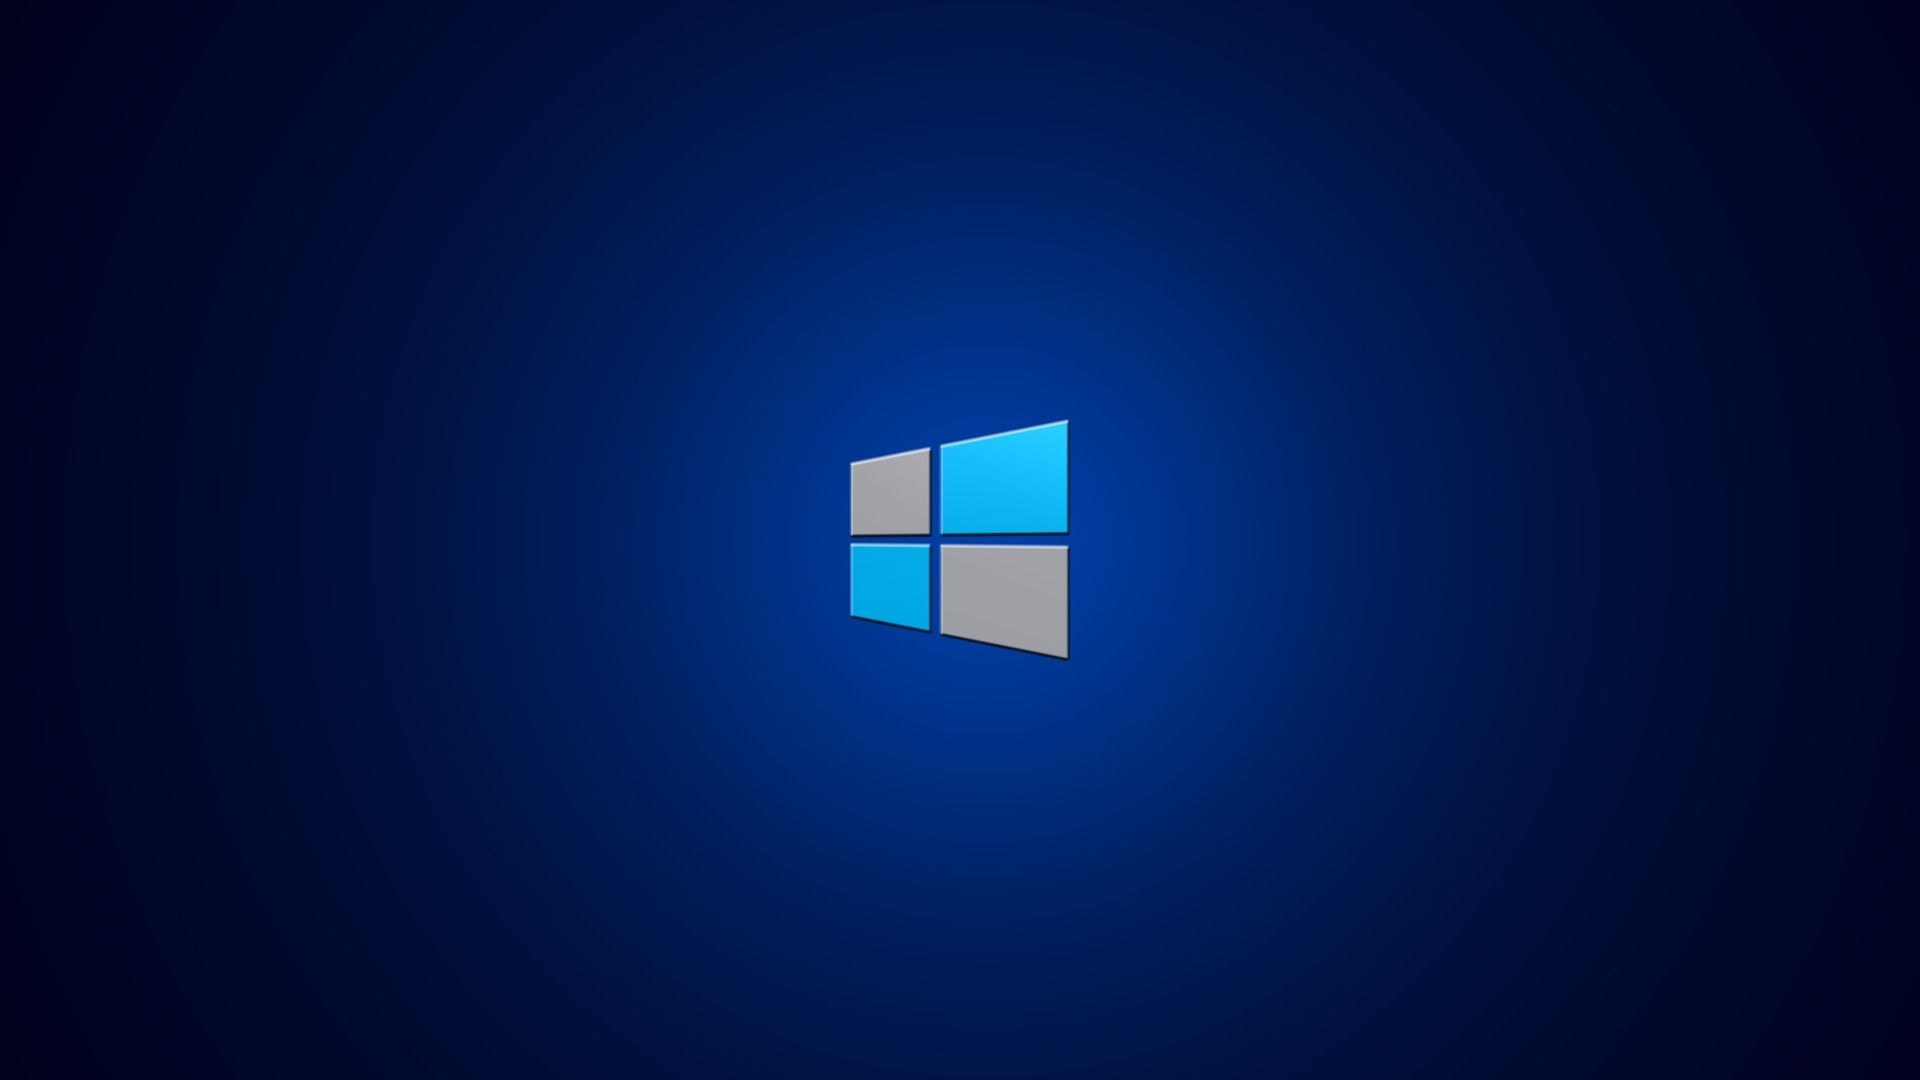 HD Windows 8 Wallpapers 1080p